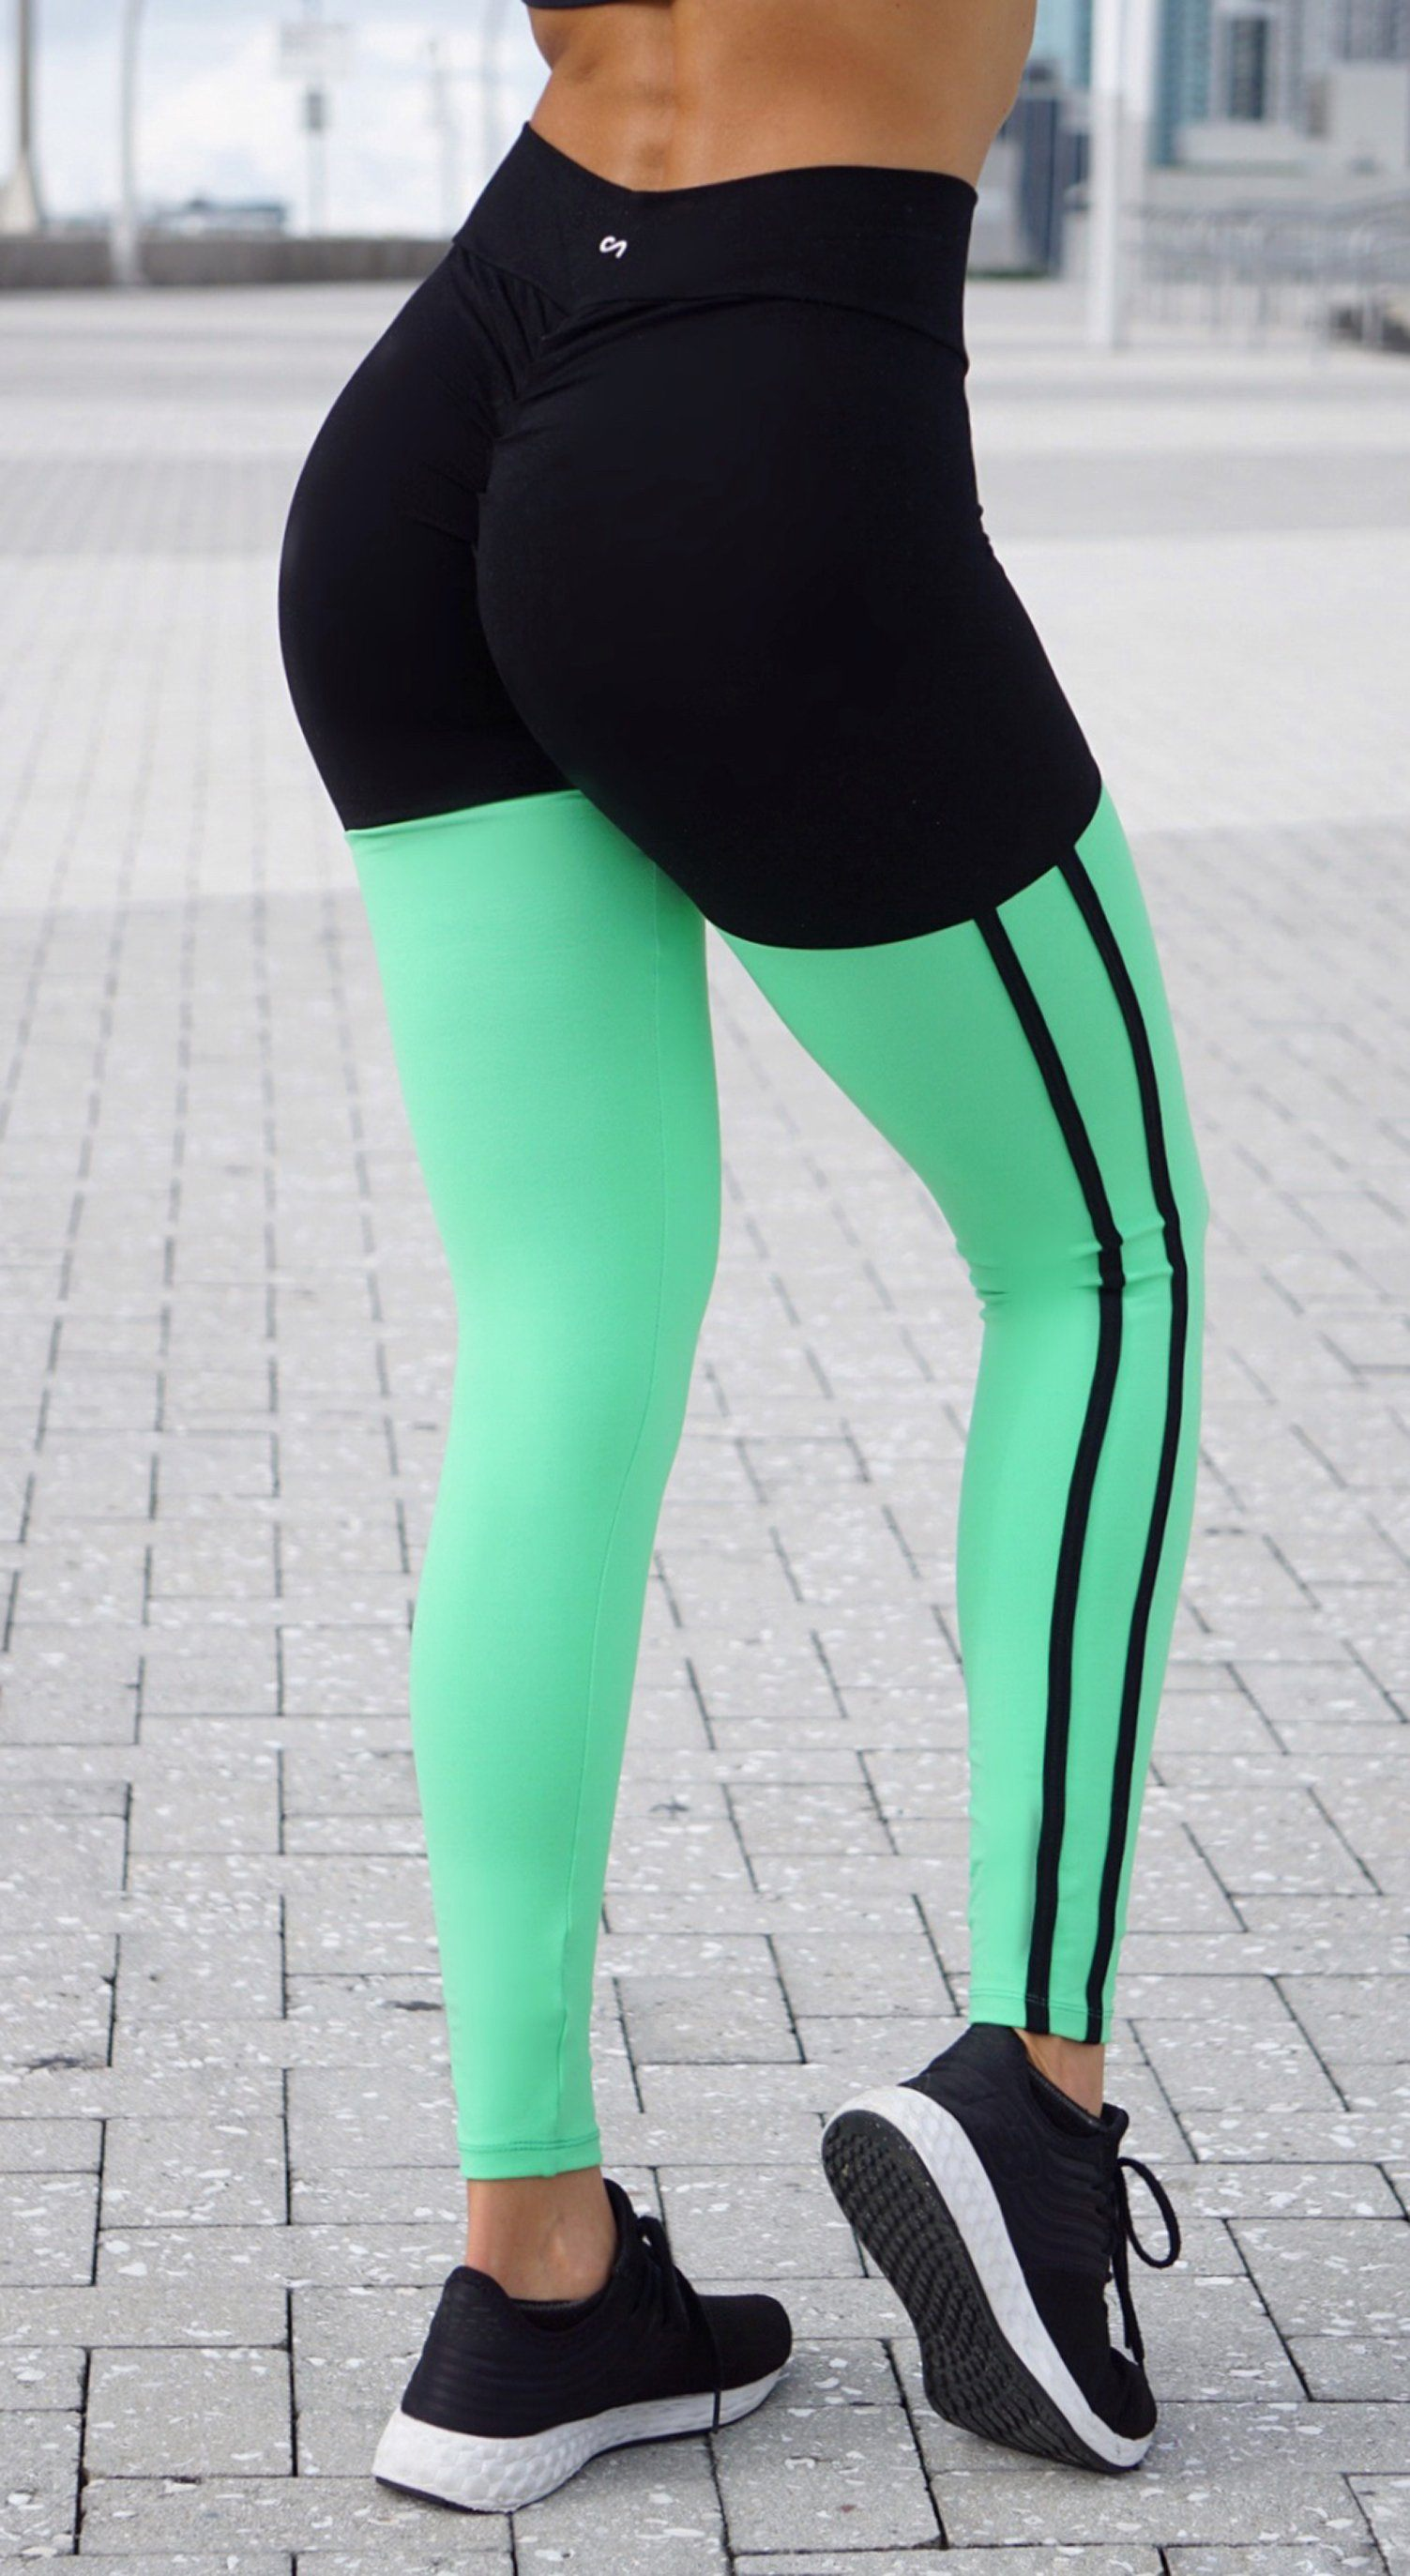 Brazilian Workout Legging - Scrunch Booty Socks Leggings Black & Avocado Green